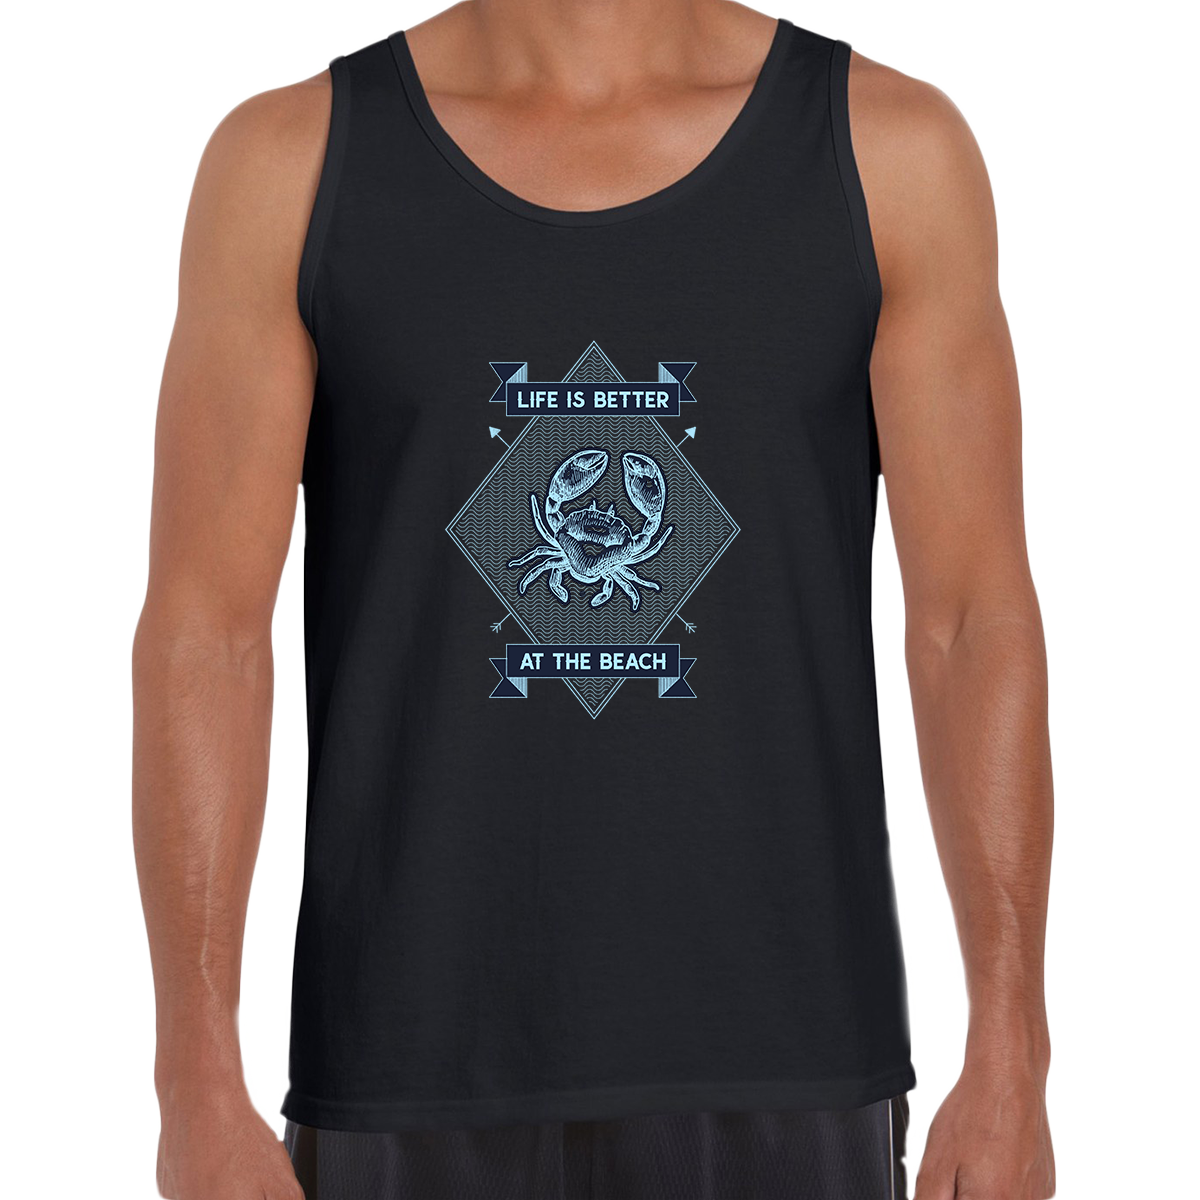 Life is Better at the Beach Relax Sunshine Seaside Short sleeve Unisex Black Tank Top